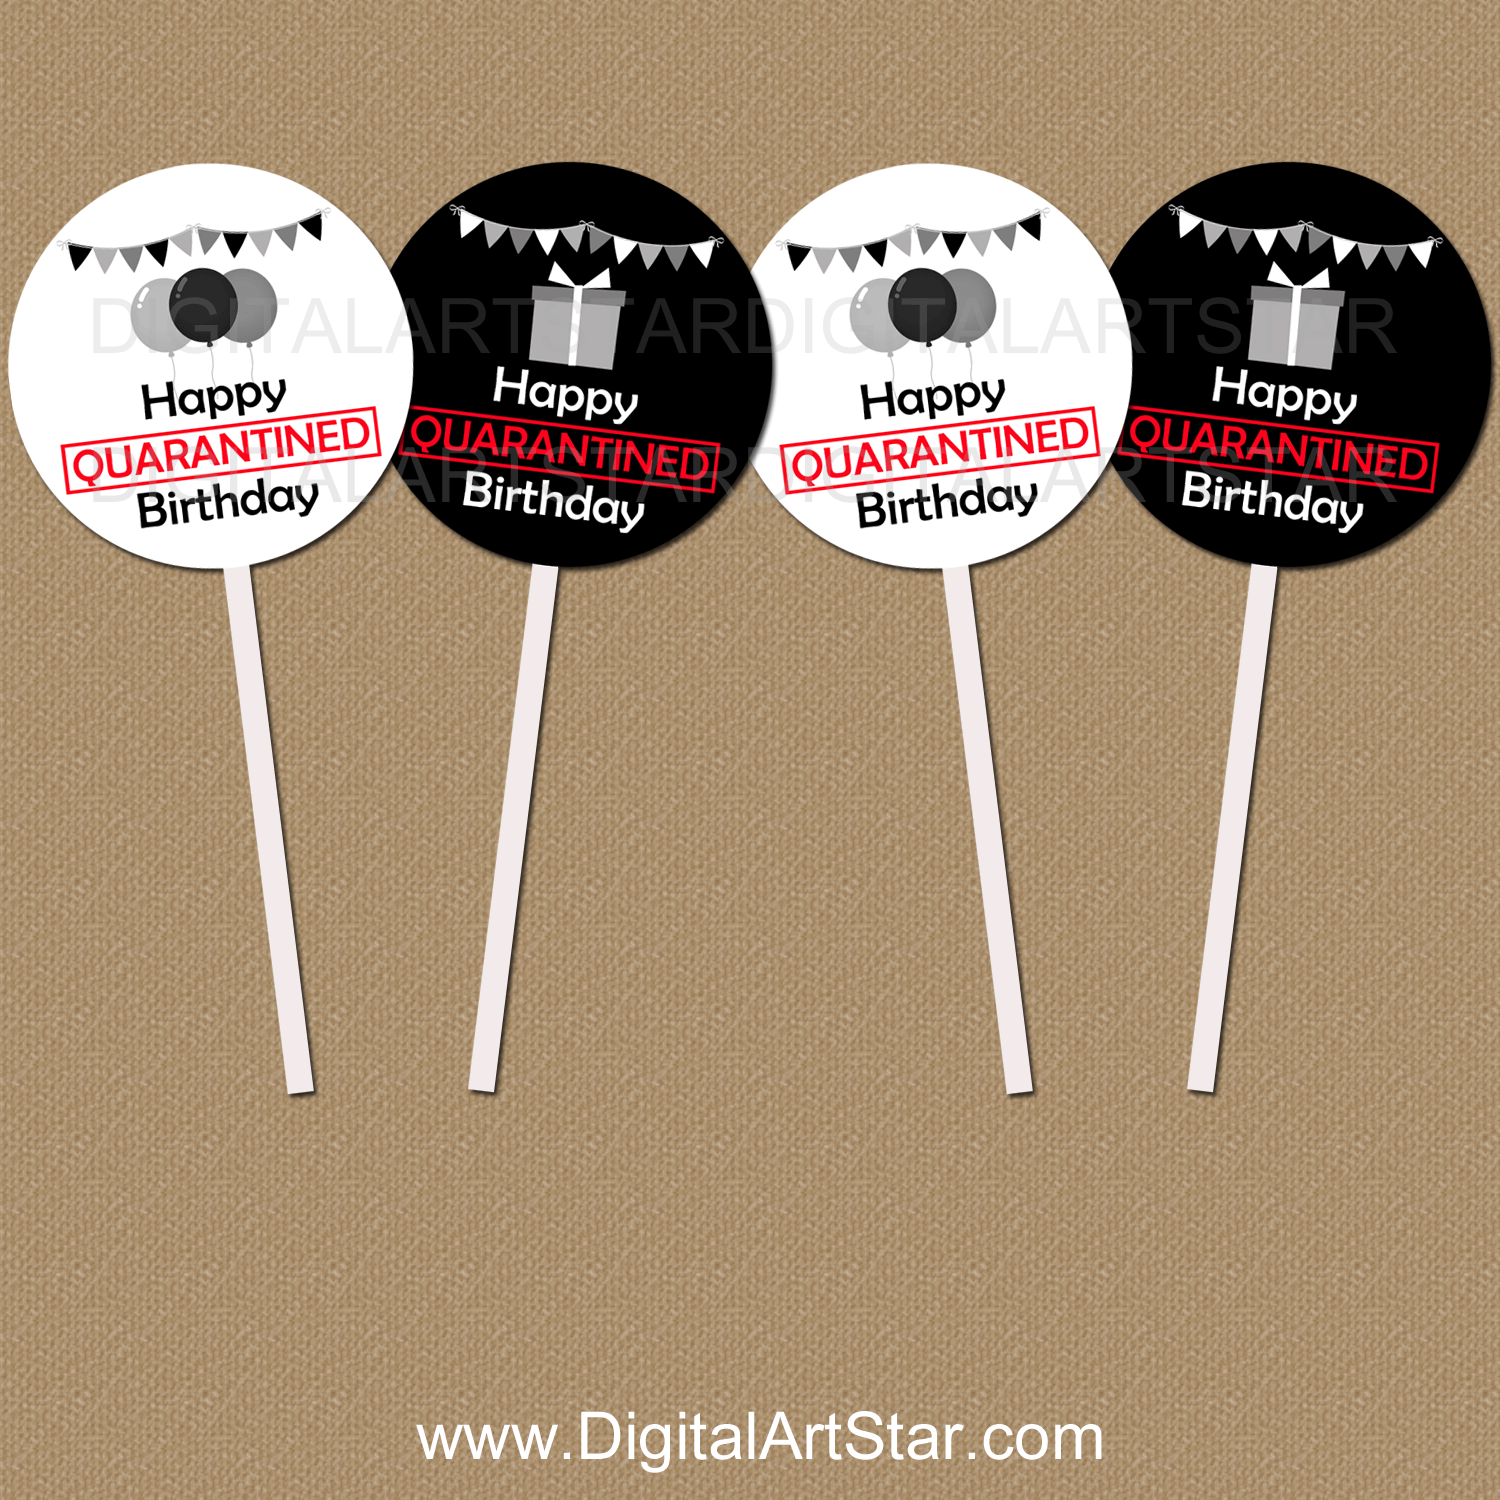 Quarantine Birthday Cupcake Toppers Black and White